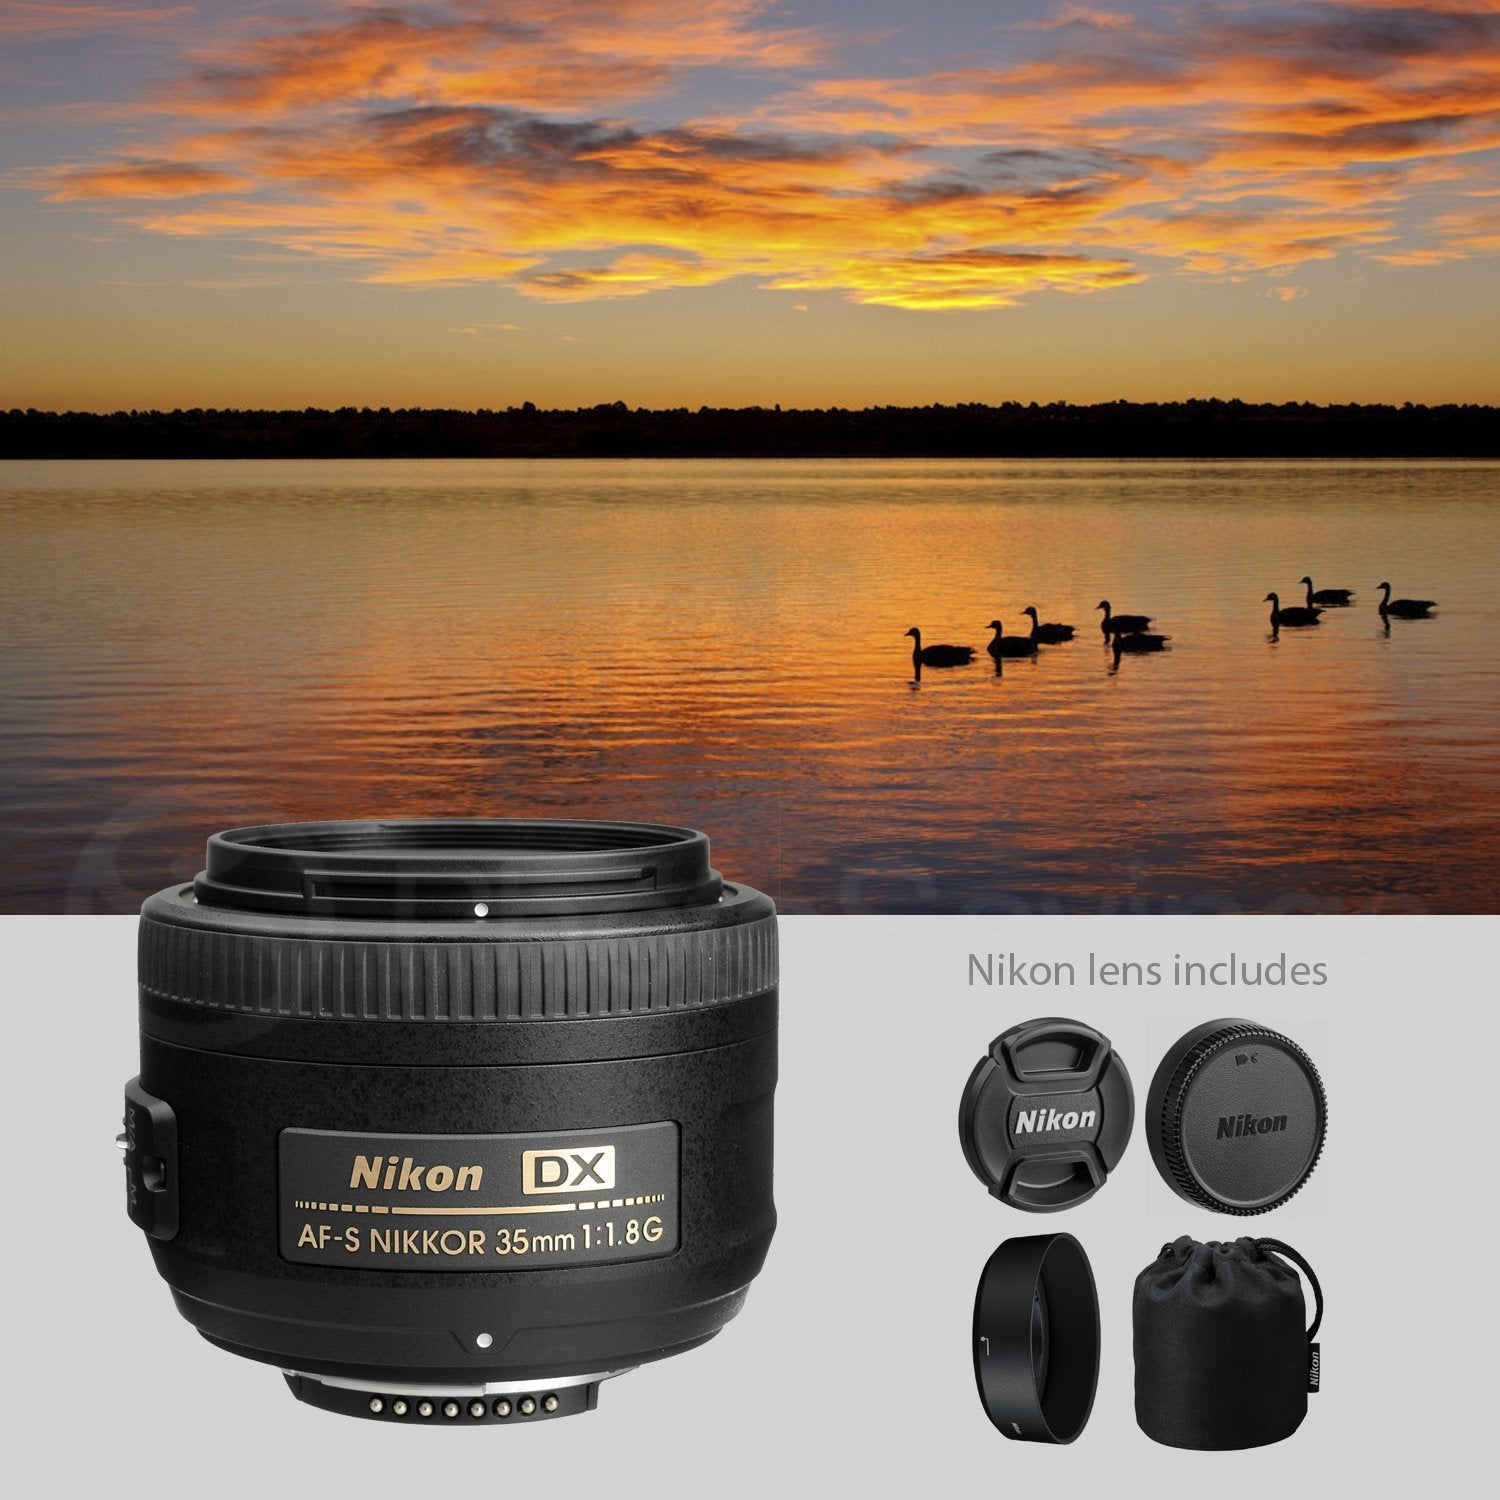 Lens Pouch Xpix Professional Handling Accessories Nikon AF-S DX NIKKOR 35mm f//1.8G Lens Filter Kit Deluxe Accessory Bundle W// 52mm Wide-Angle /& Telephoto Lens